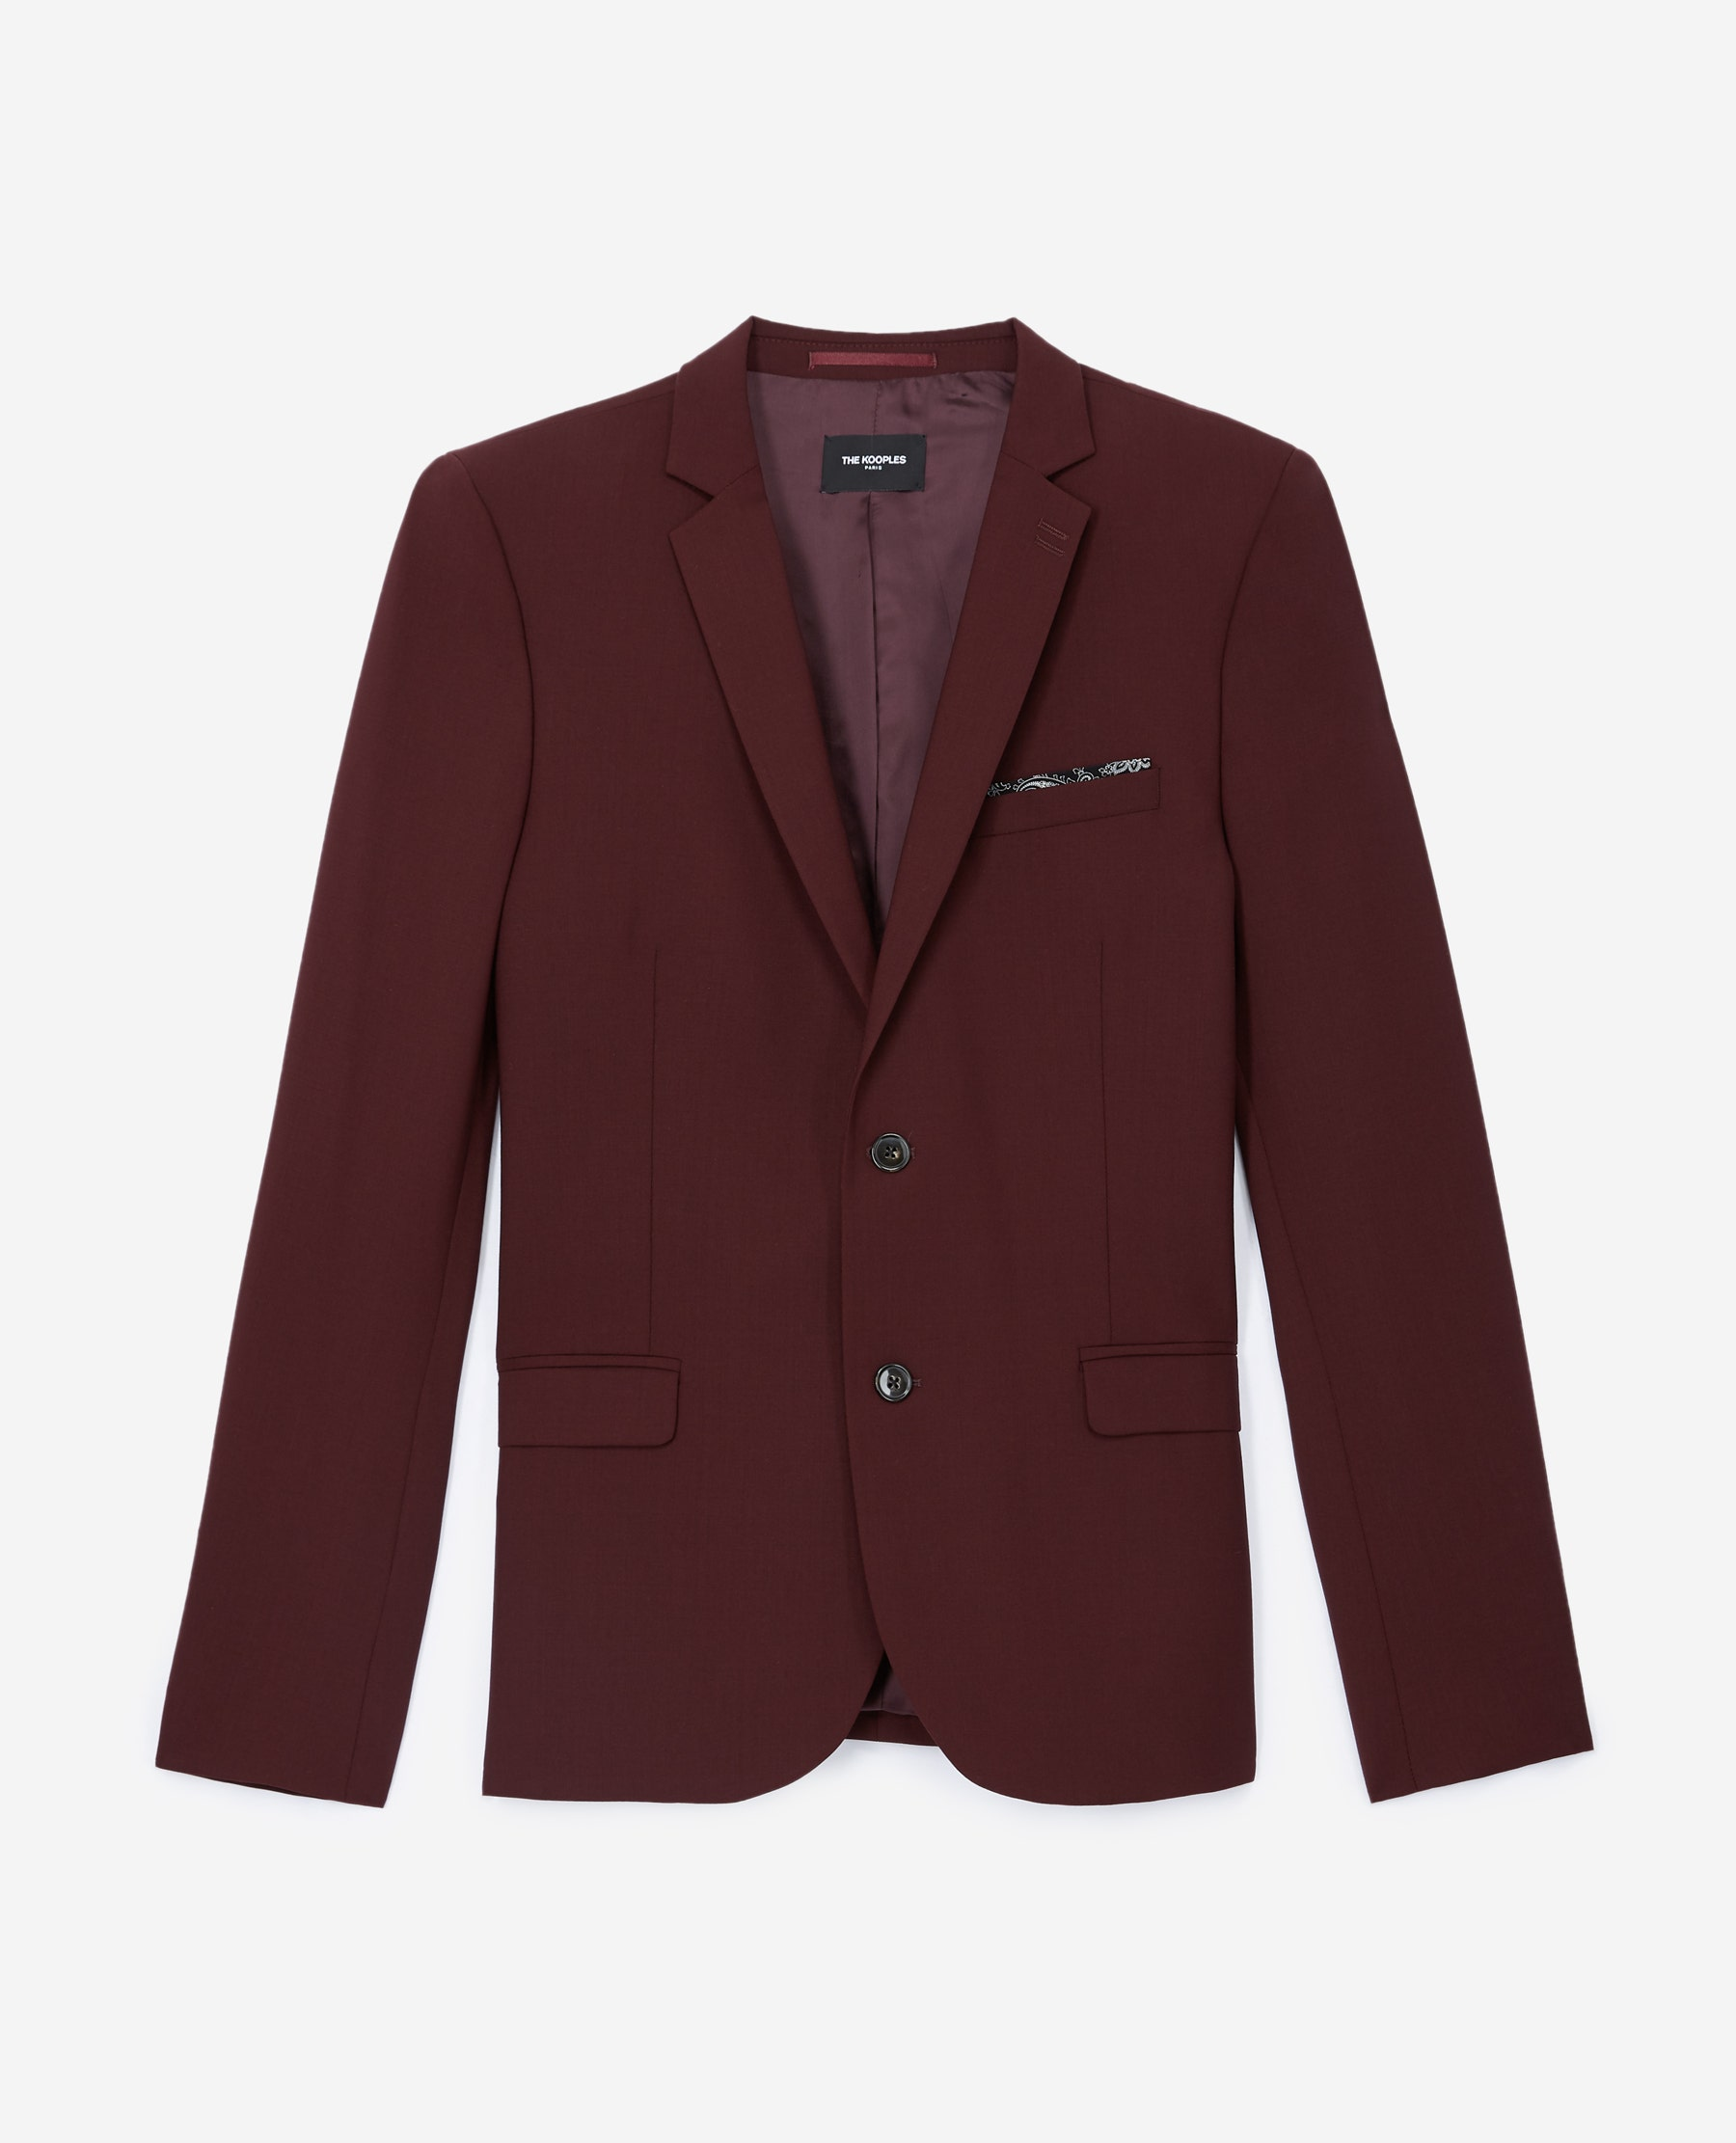 Veste laine bordeaux boutonnée - The Kooples - Modalova